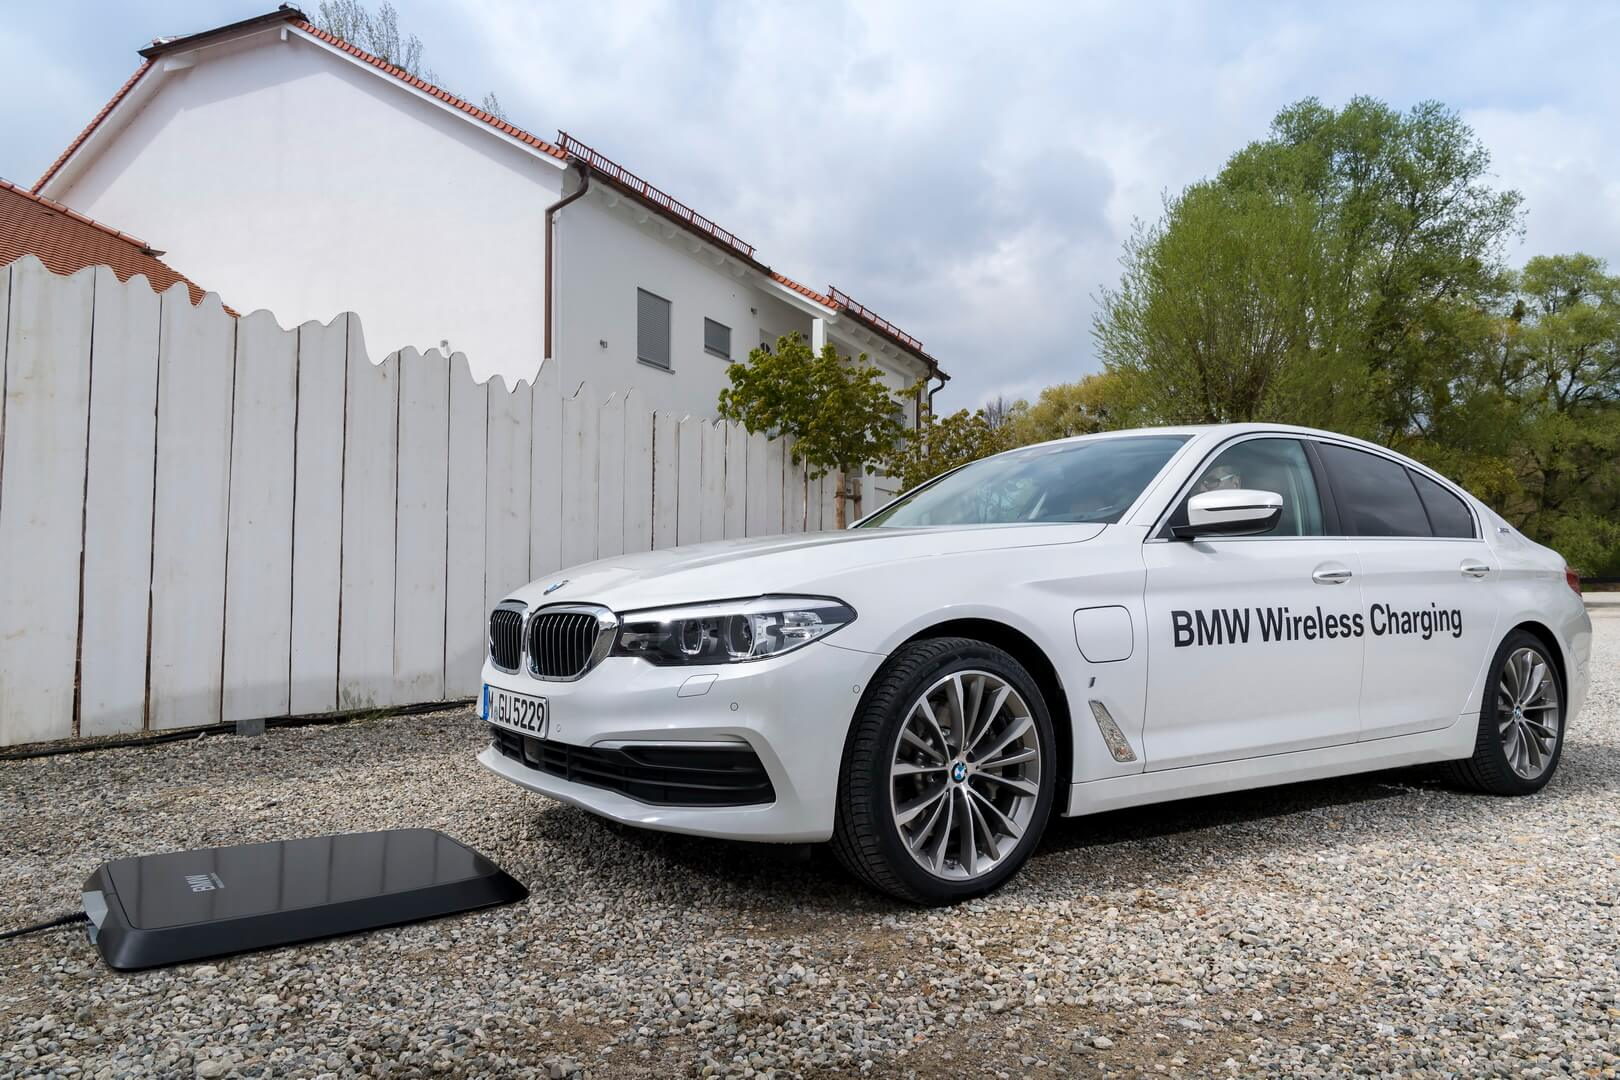 BMW 530e Iperformance-exterior-4